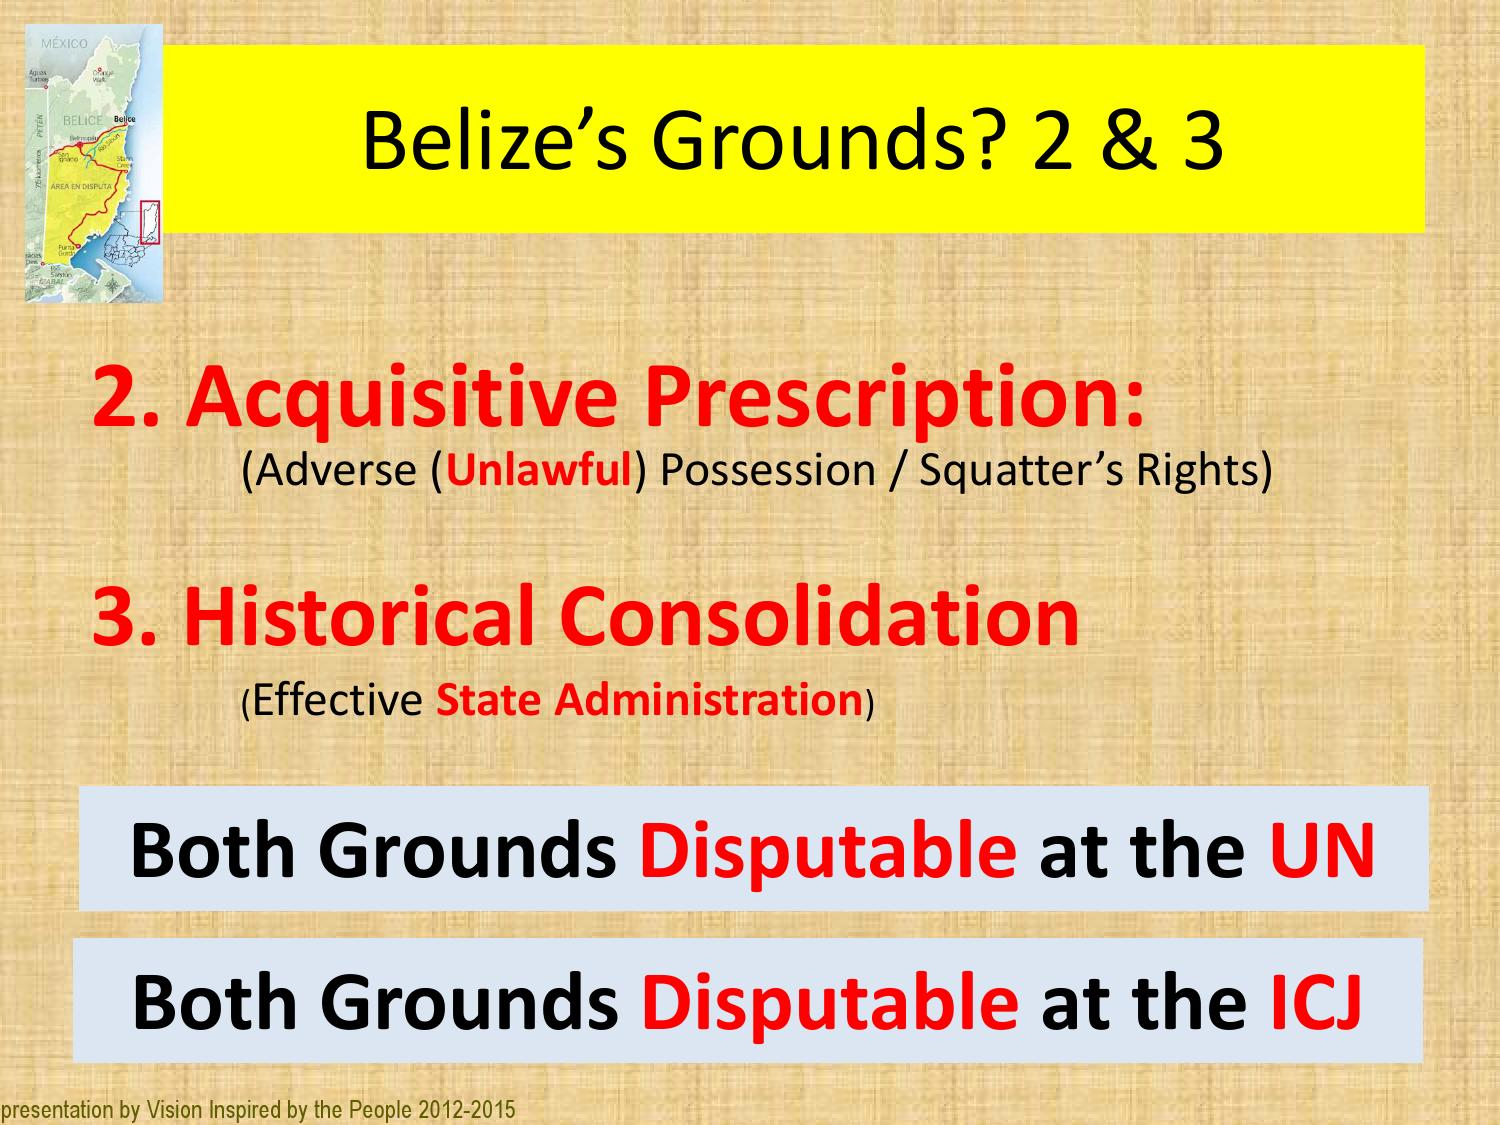 Issuu why we shouldn 39 t go to the icj by leslie tech belize - Prescription acquisitive terrain ...